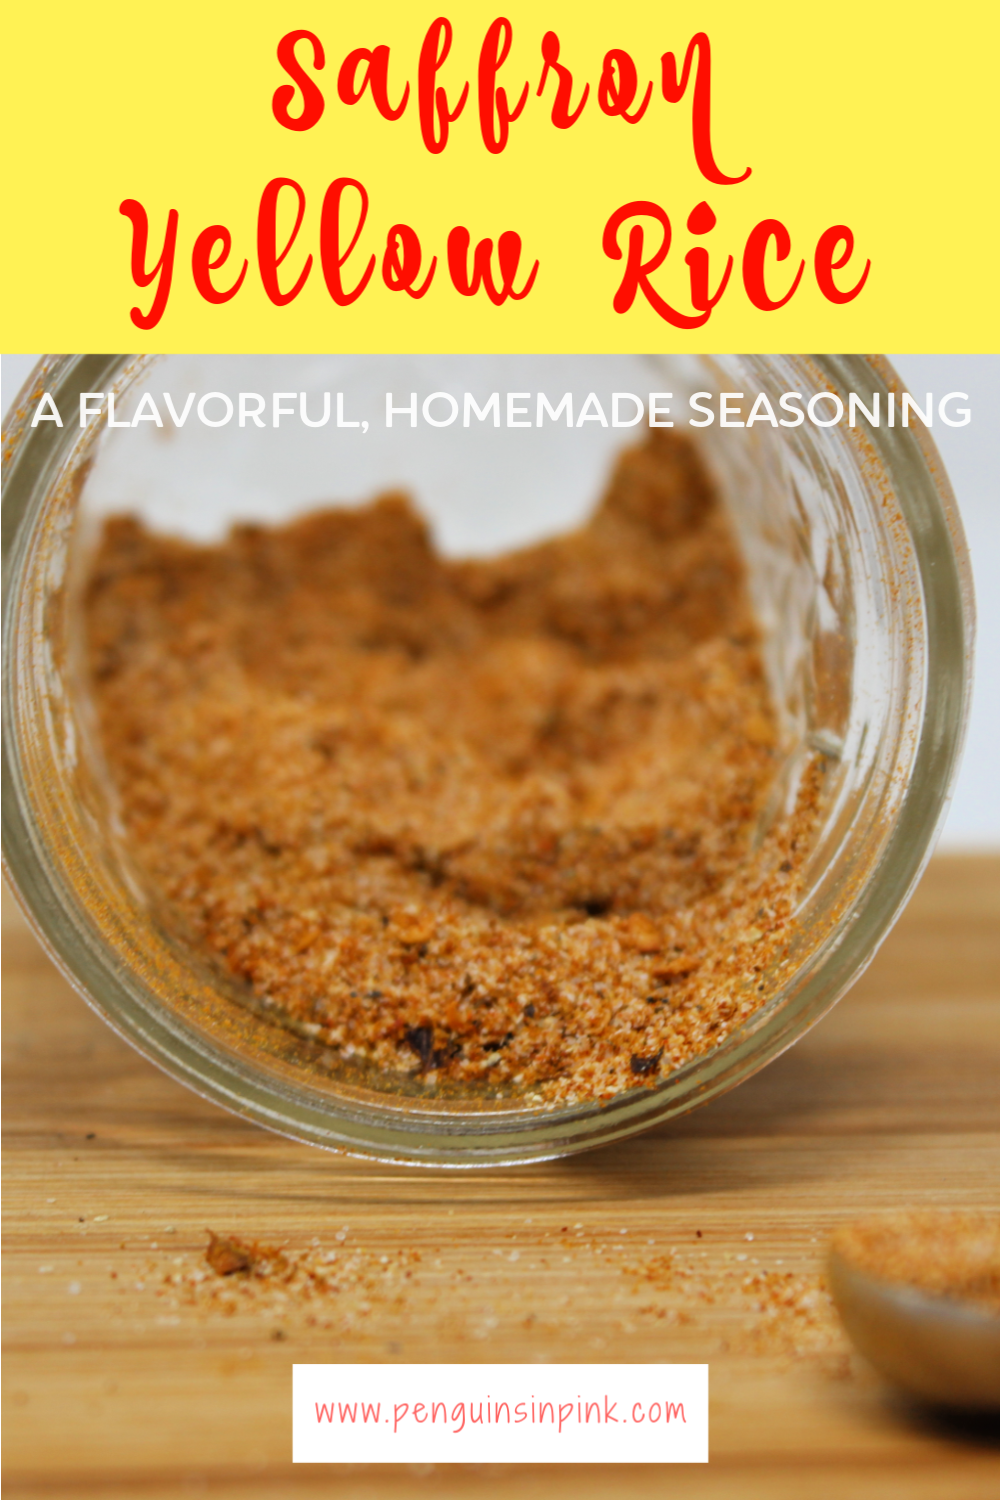 Saffron Yellow Rice Seasoning is a delicious, flavorful, homemade version of commercial seasoning mix to make yellow rice.